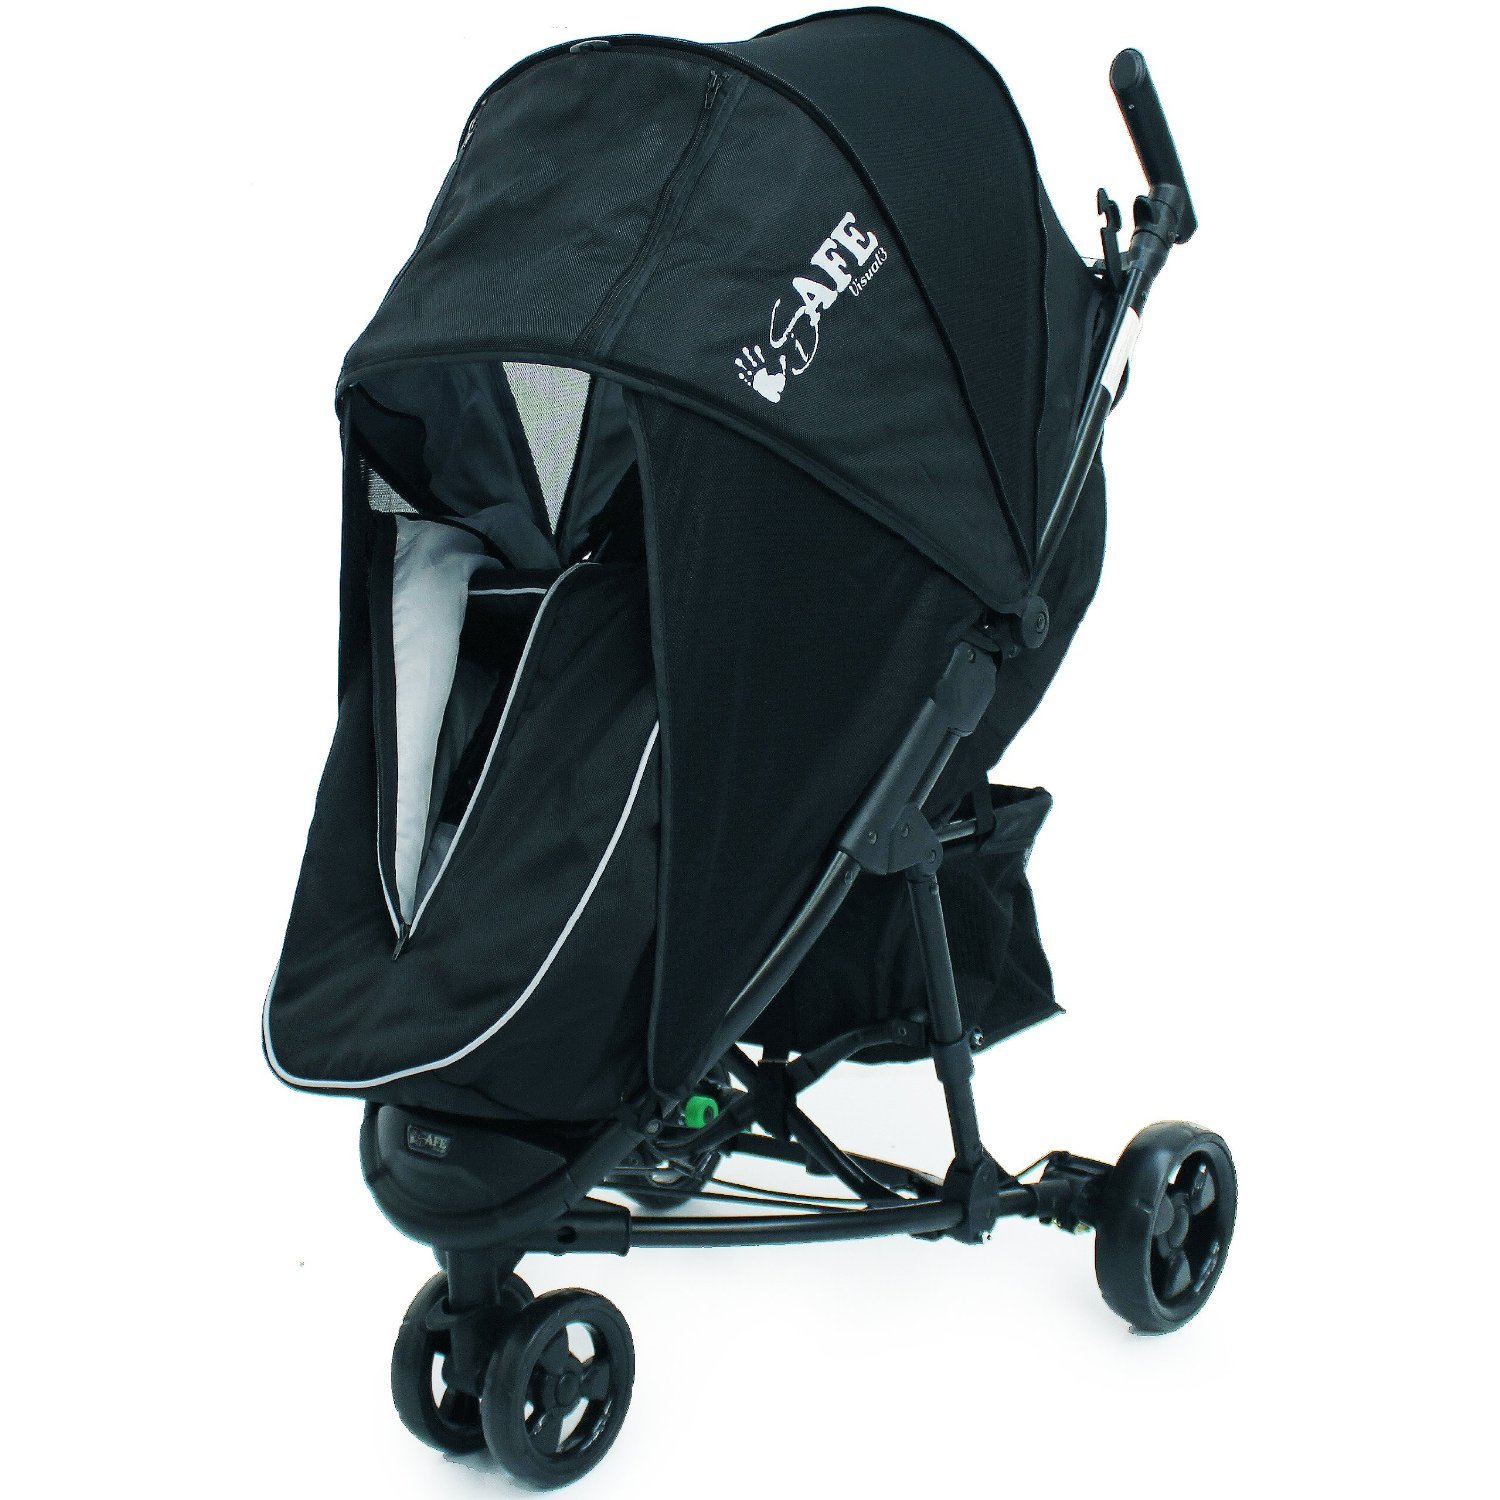 iSafe Visual 3 - Black & Grey Complete With Bumper Bar and Bootcover ISAFEVI3 - BG